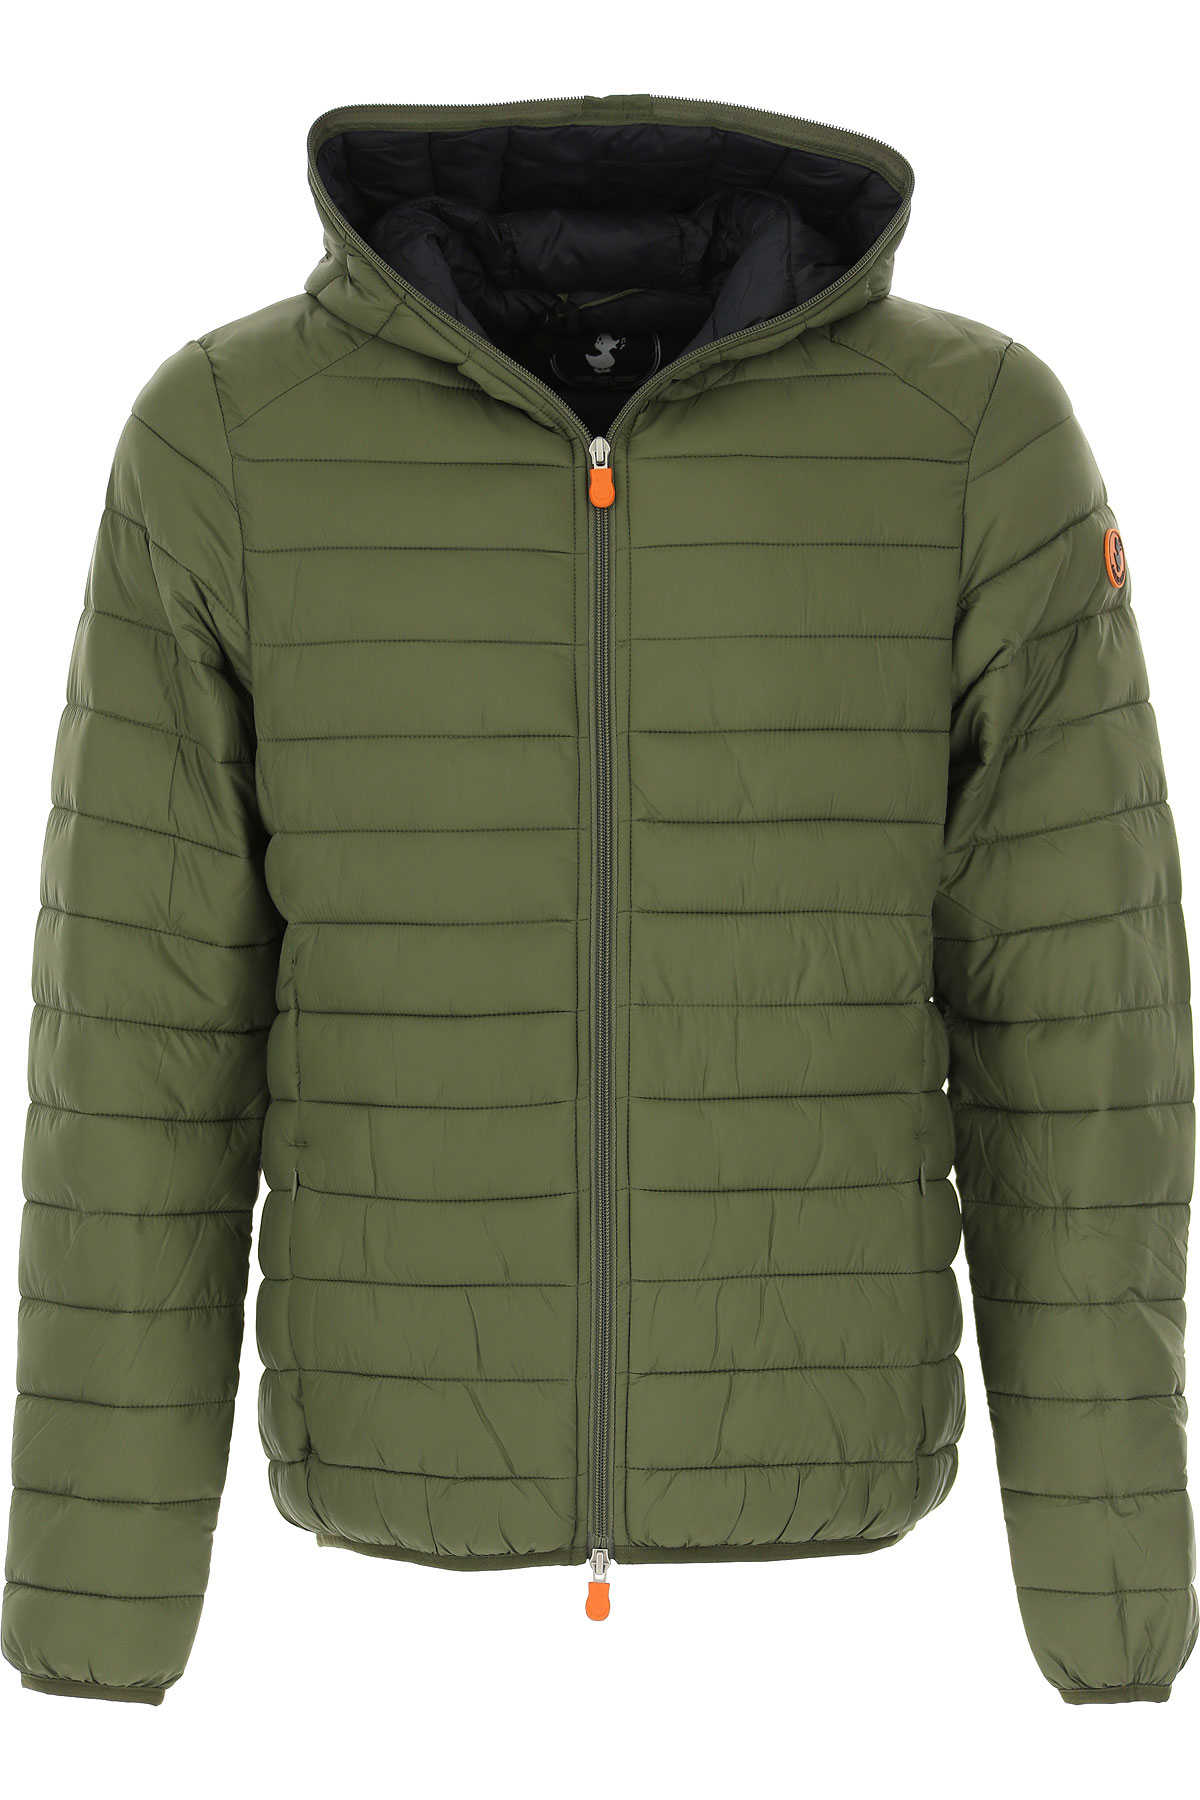 Save the Duck Jacket for Men Military Green USA - GOOFASH